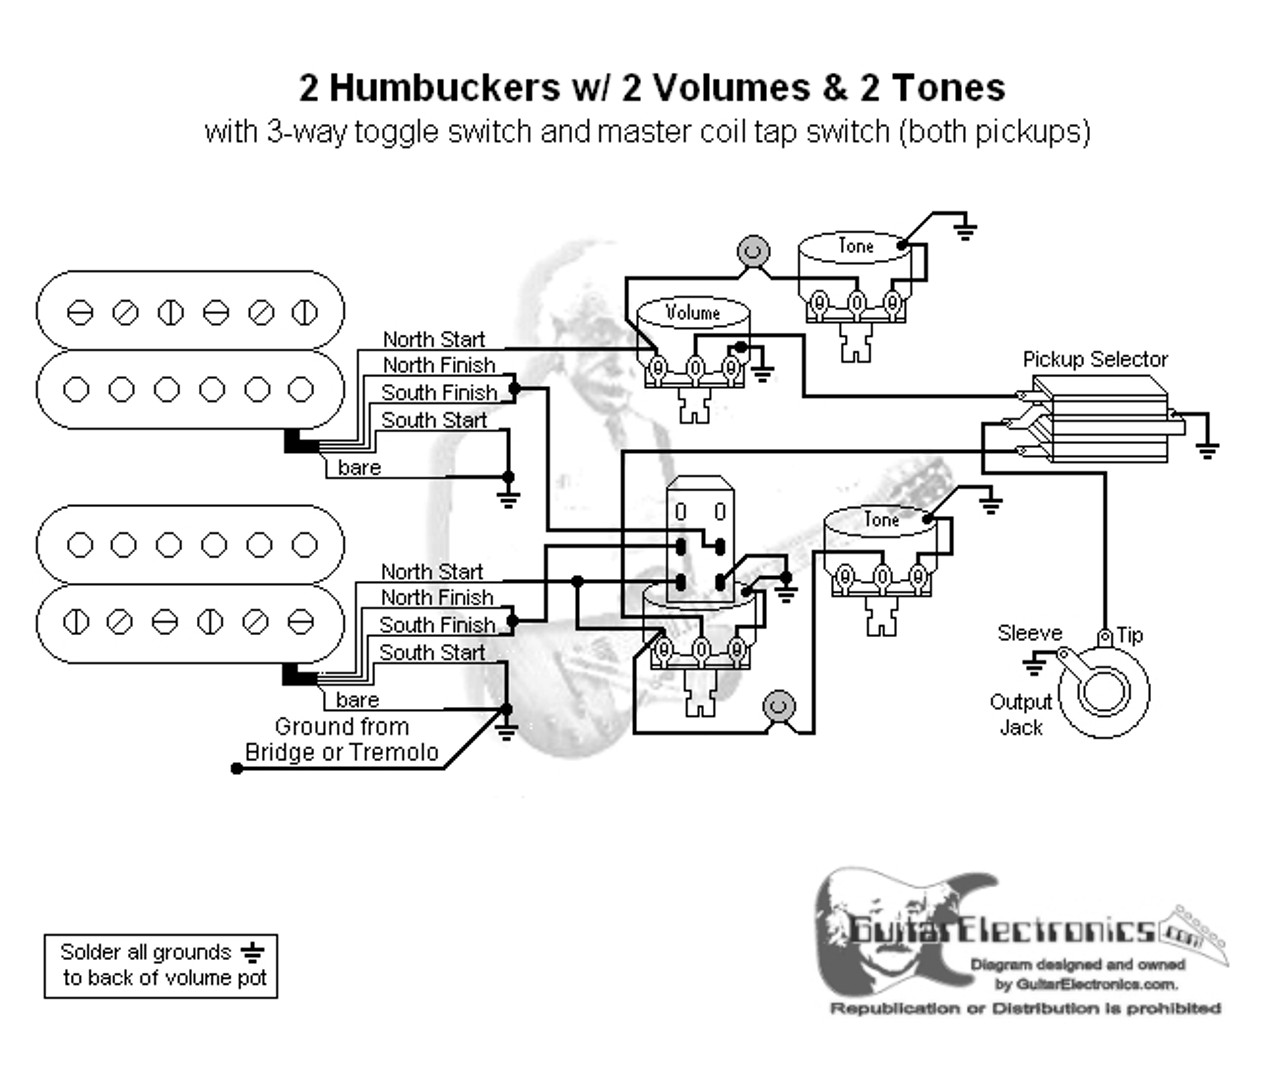 medium resolution of 2 humbuckers 3 way toggle switch 2 volumes 2 tones coil tap hss with coil split